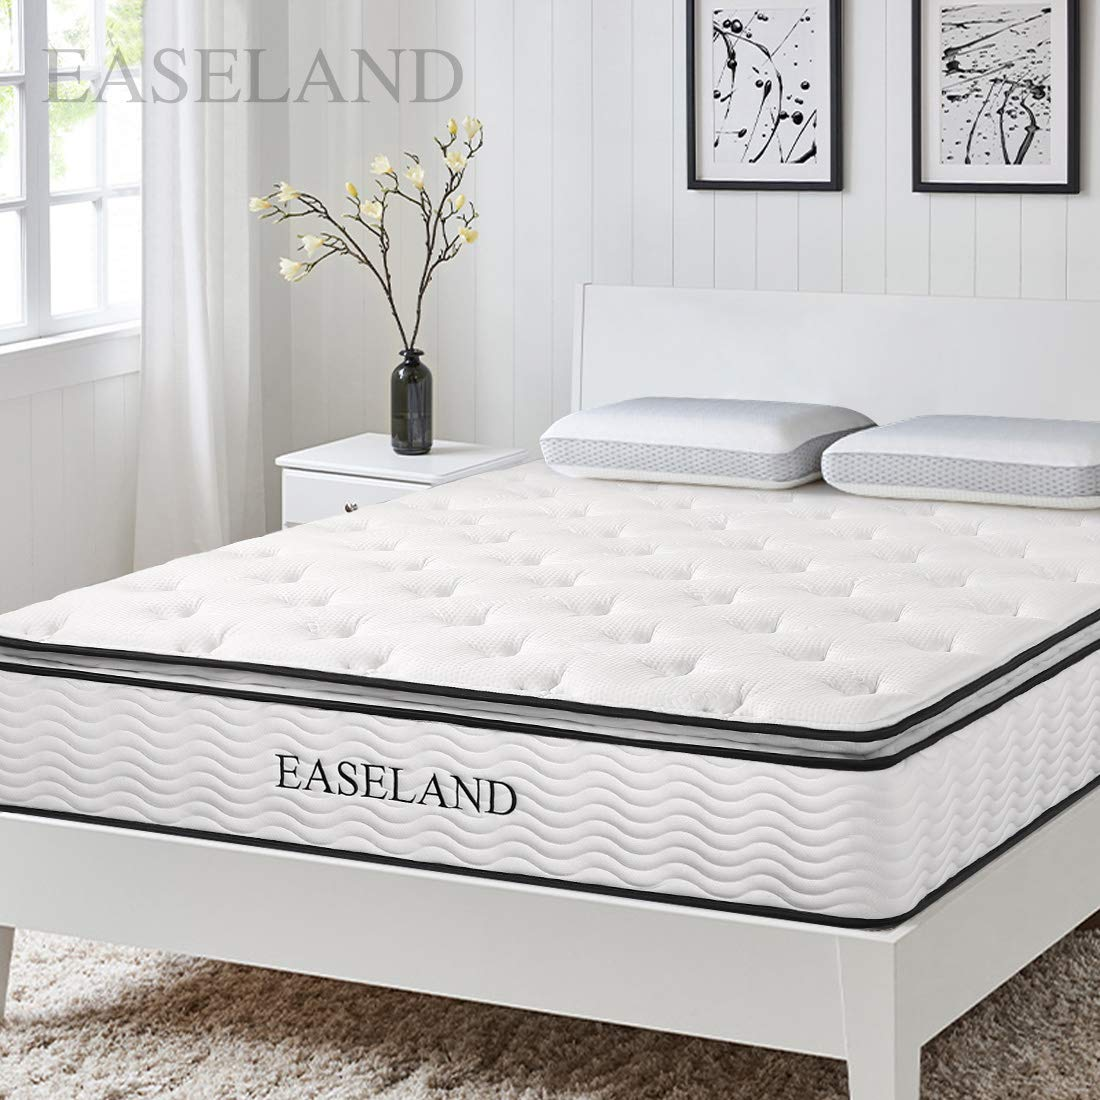 EASELAND King Mattress - Skin-Friendly Bamboo Pillow Top and Innerspring Hybrid 12'' Mattress - Individually Encased Pocket Coils - 10-Year Warranty by EASELAND